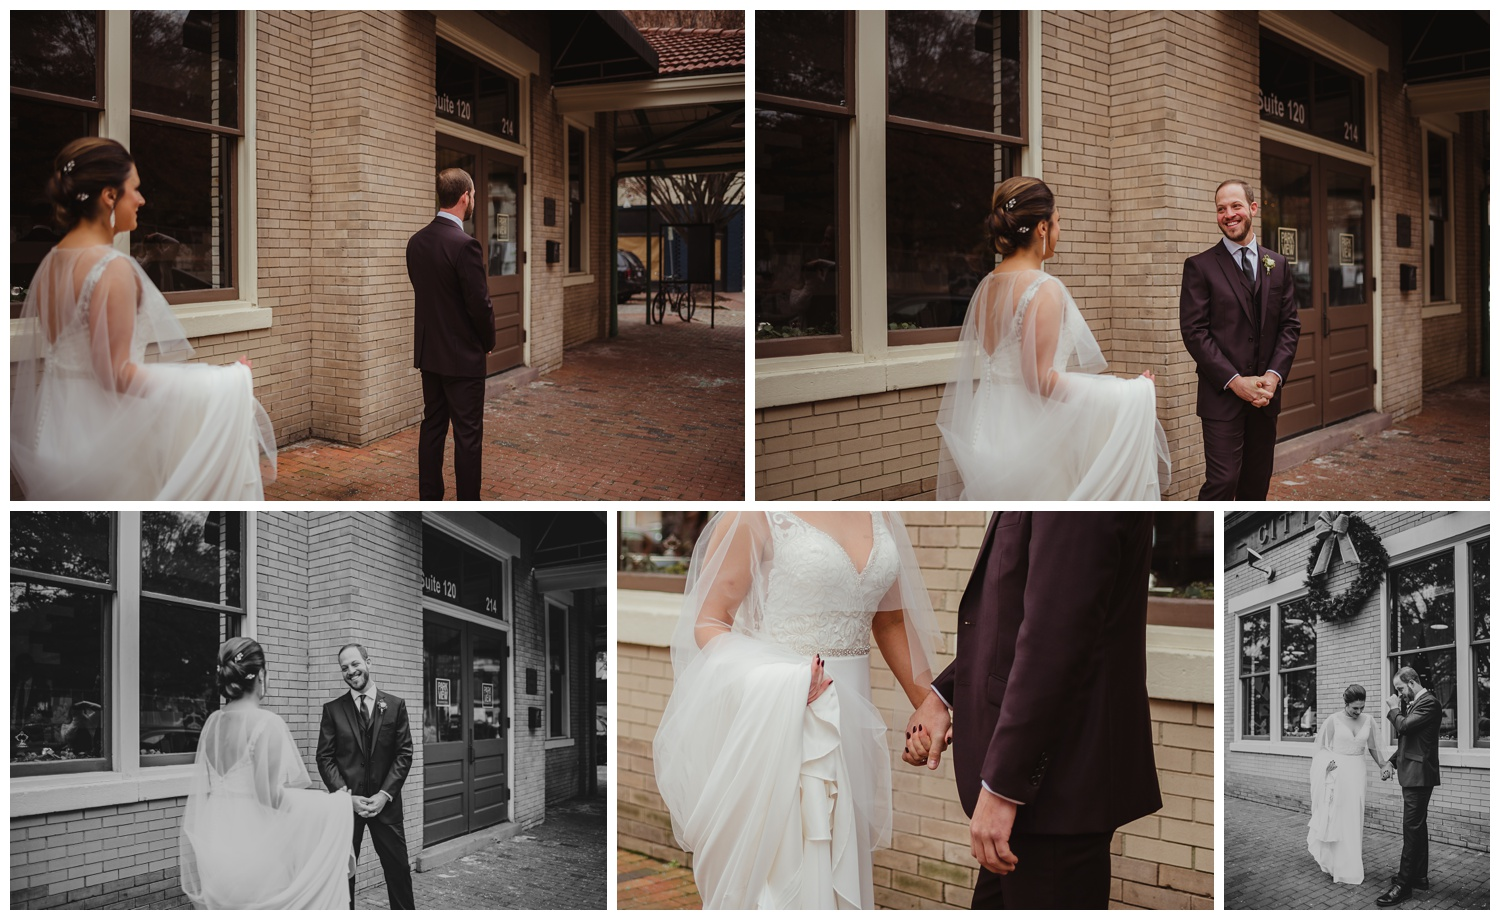 The bride and groom had a first look before their wedding ceremony in downtown Raleigh, photos by Rose Trail Images.